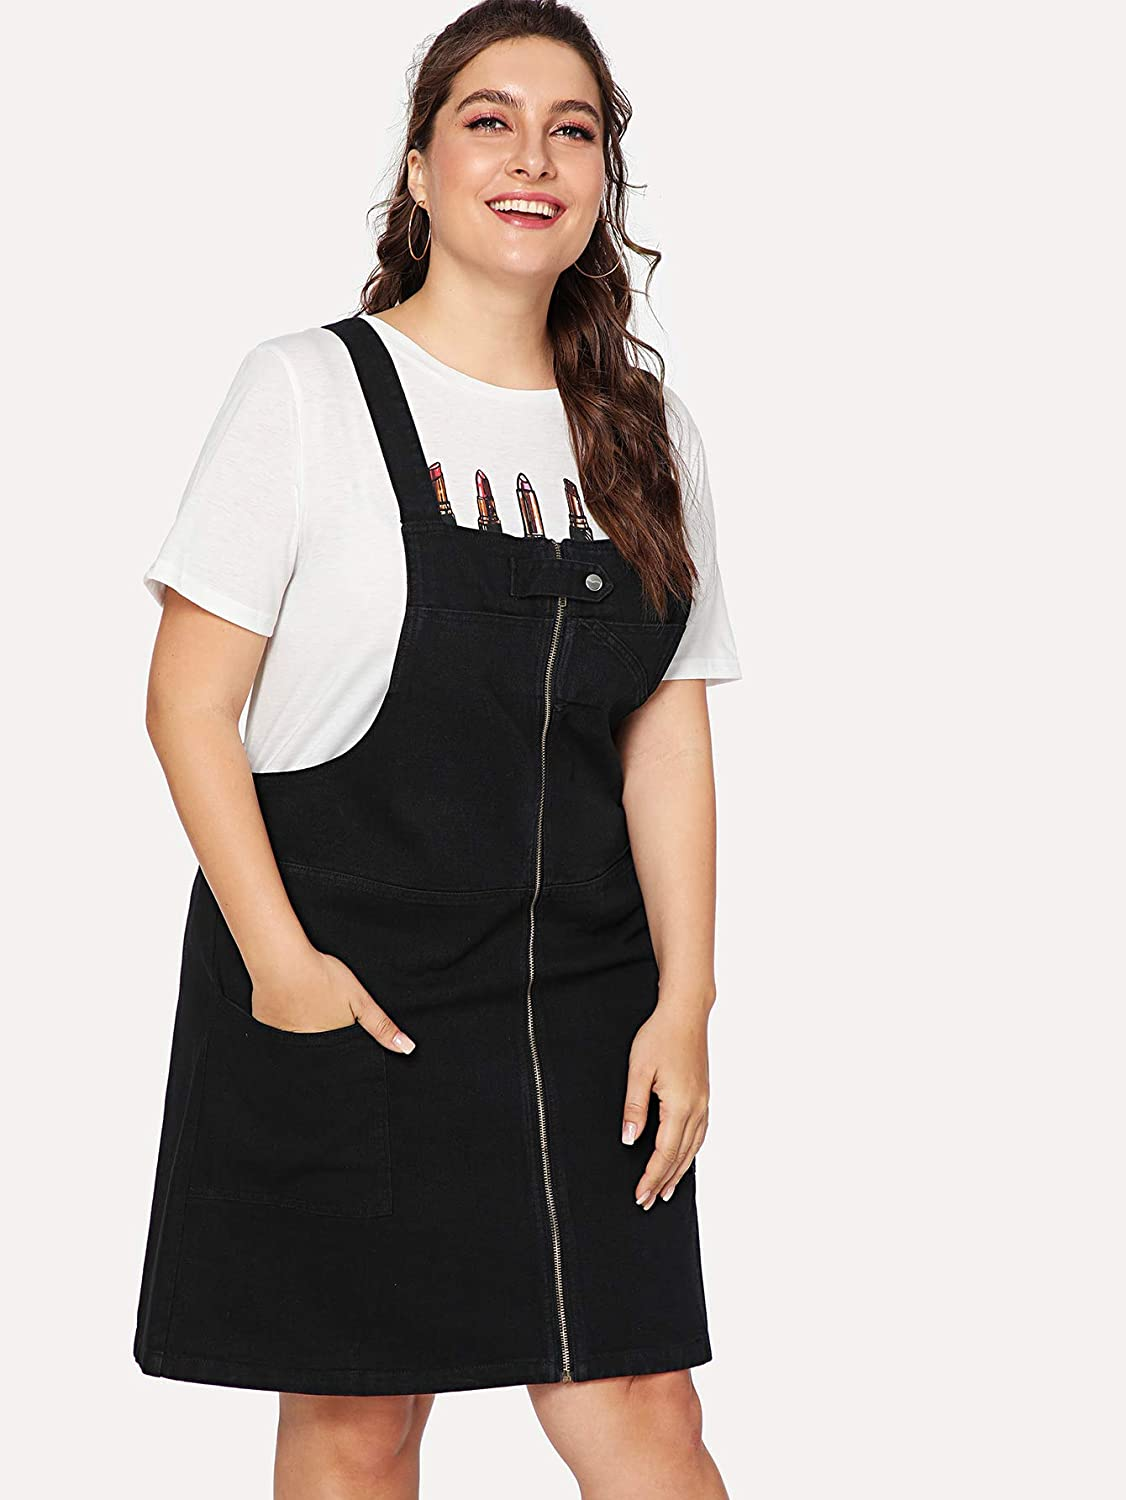 bfcb6df1415 Romwe Women s Plus Size Loose Casual A Line Pocket Pinafore Overall Dress  at Amazon Women s Clothing store